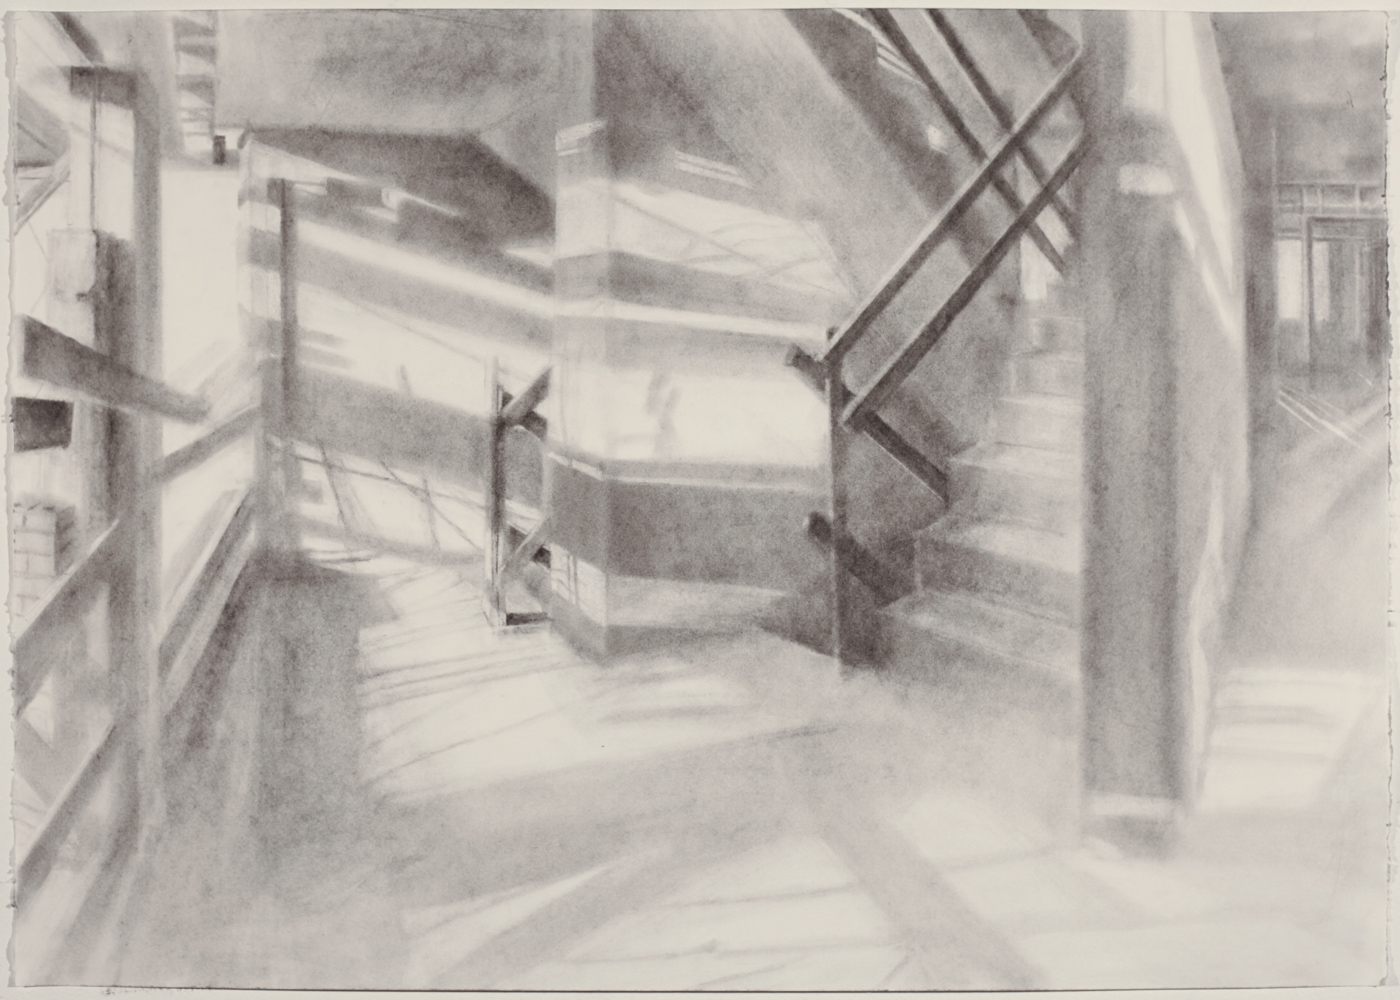 Study for Mural at The Delson, 2018 graphite powder on paper, 18 x 24 in